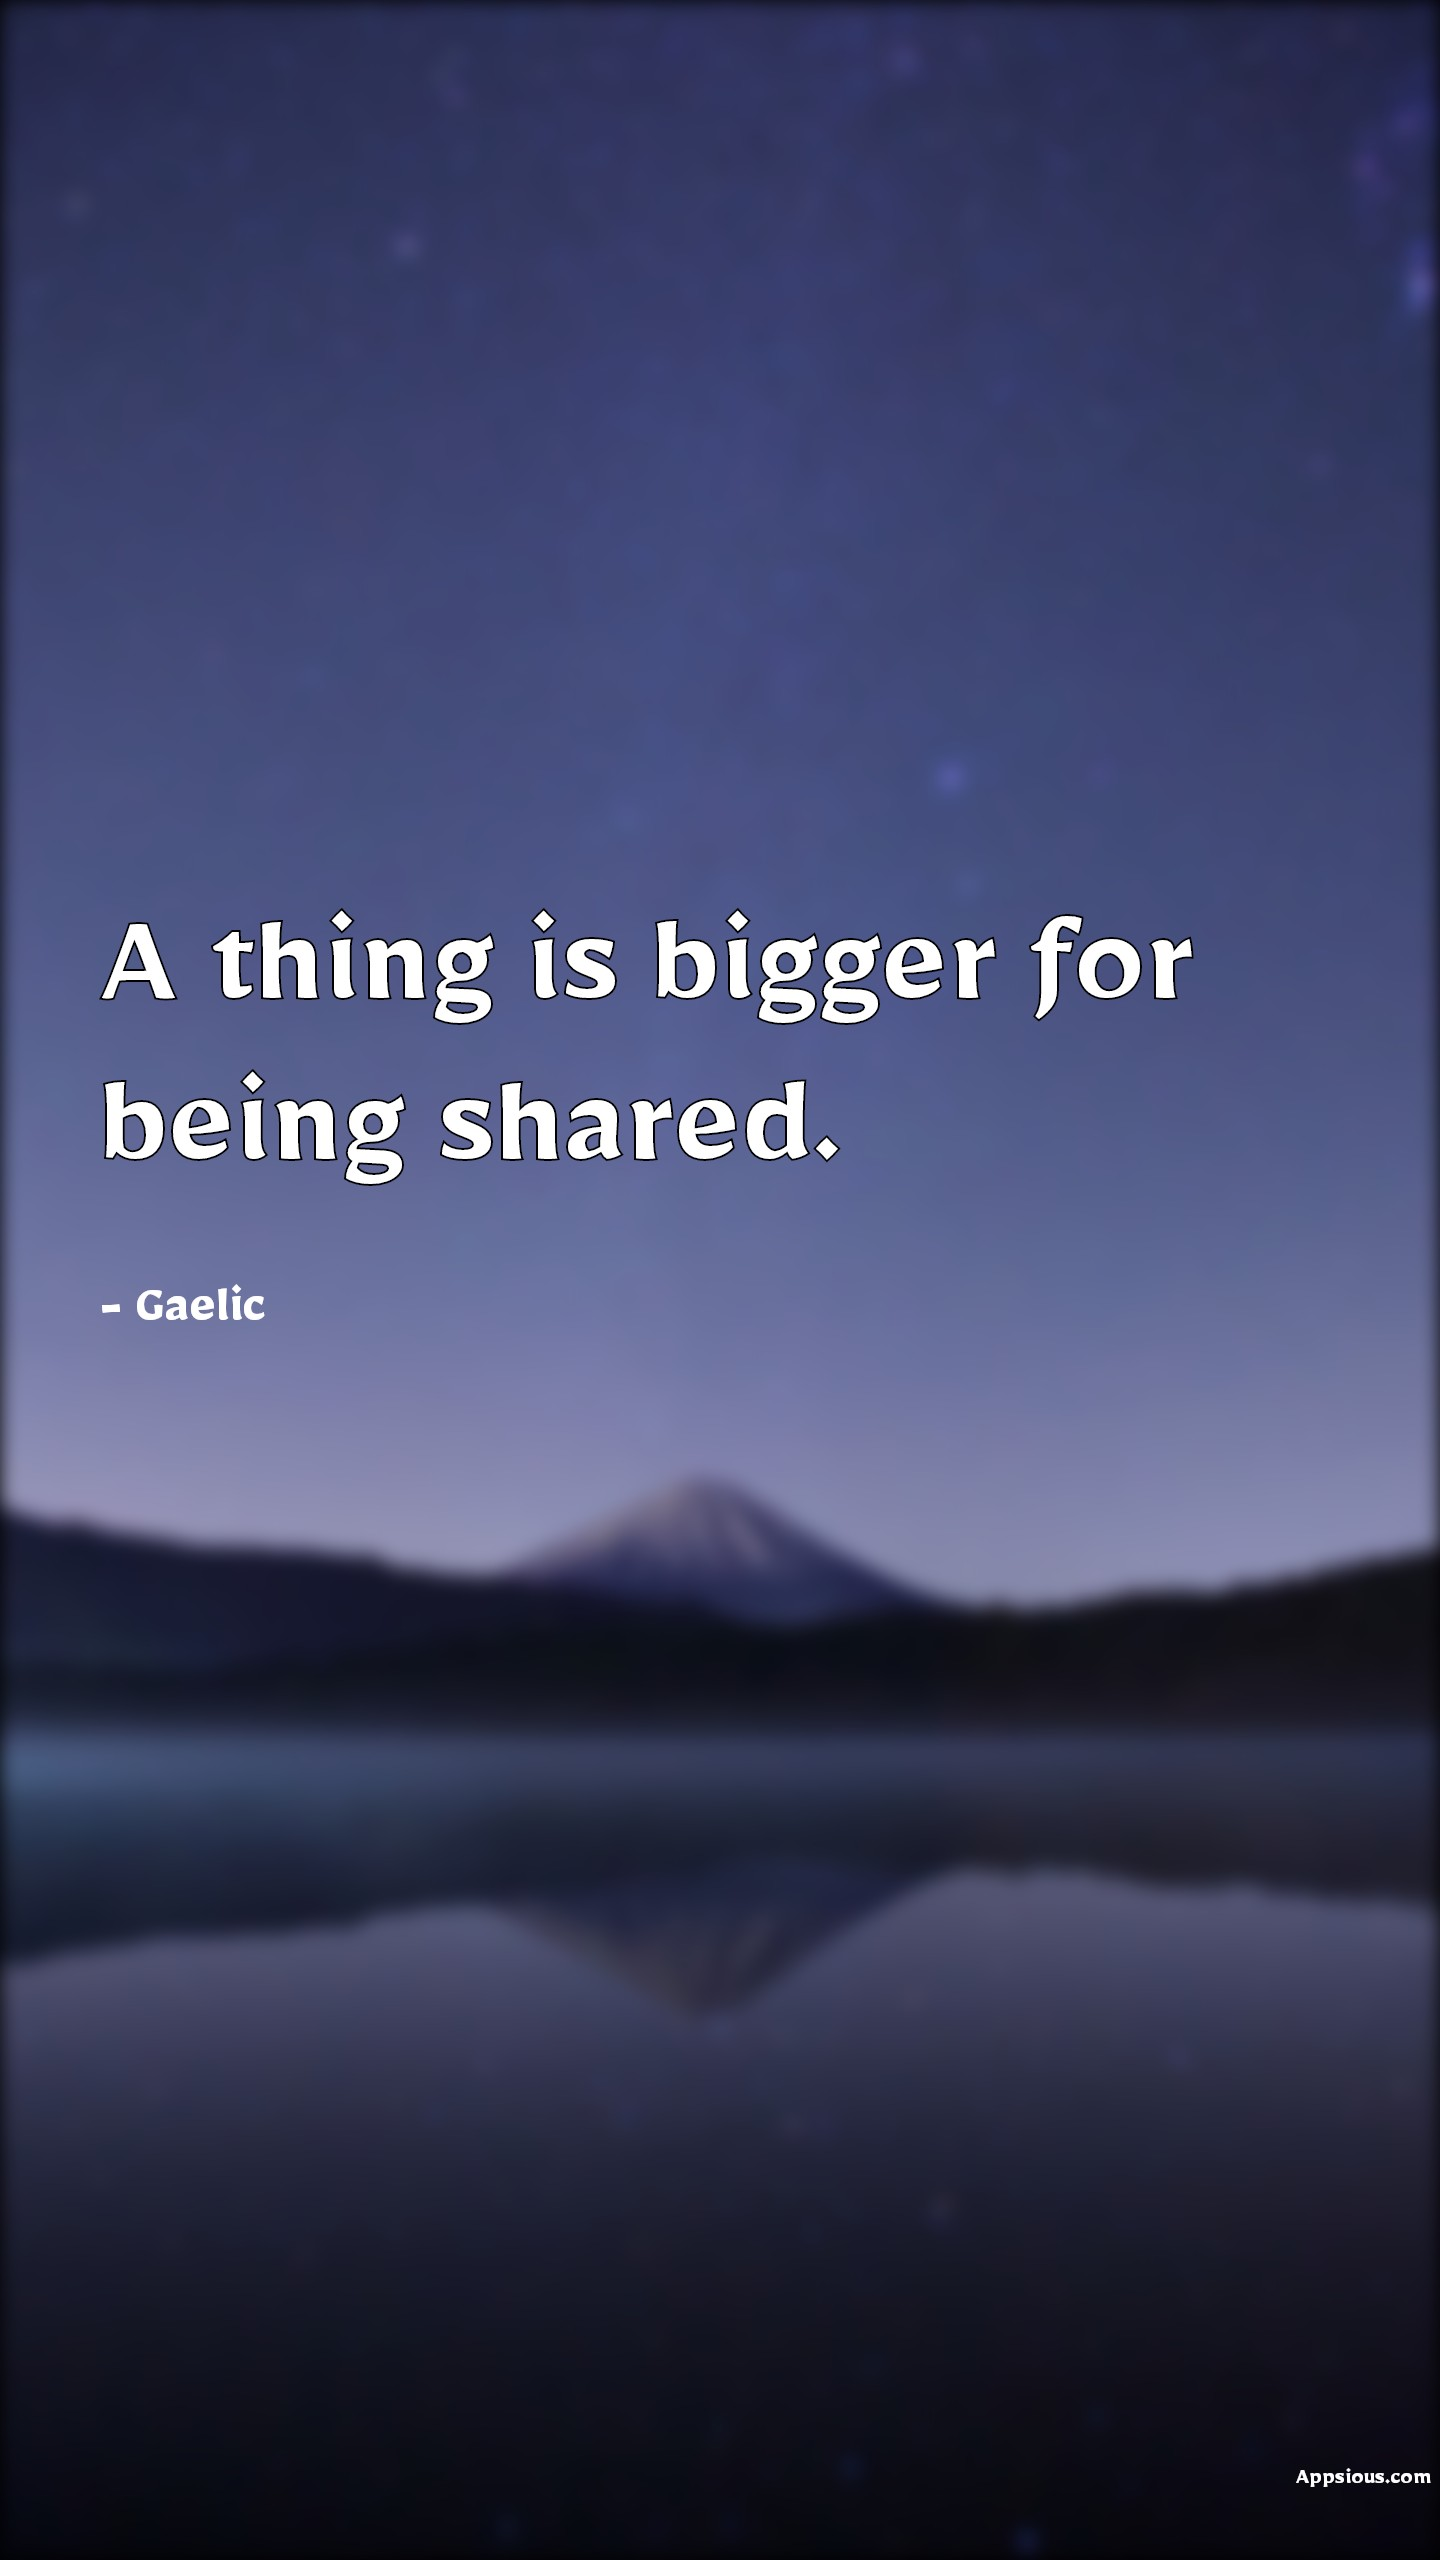 A thing is bigger for being shared.